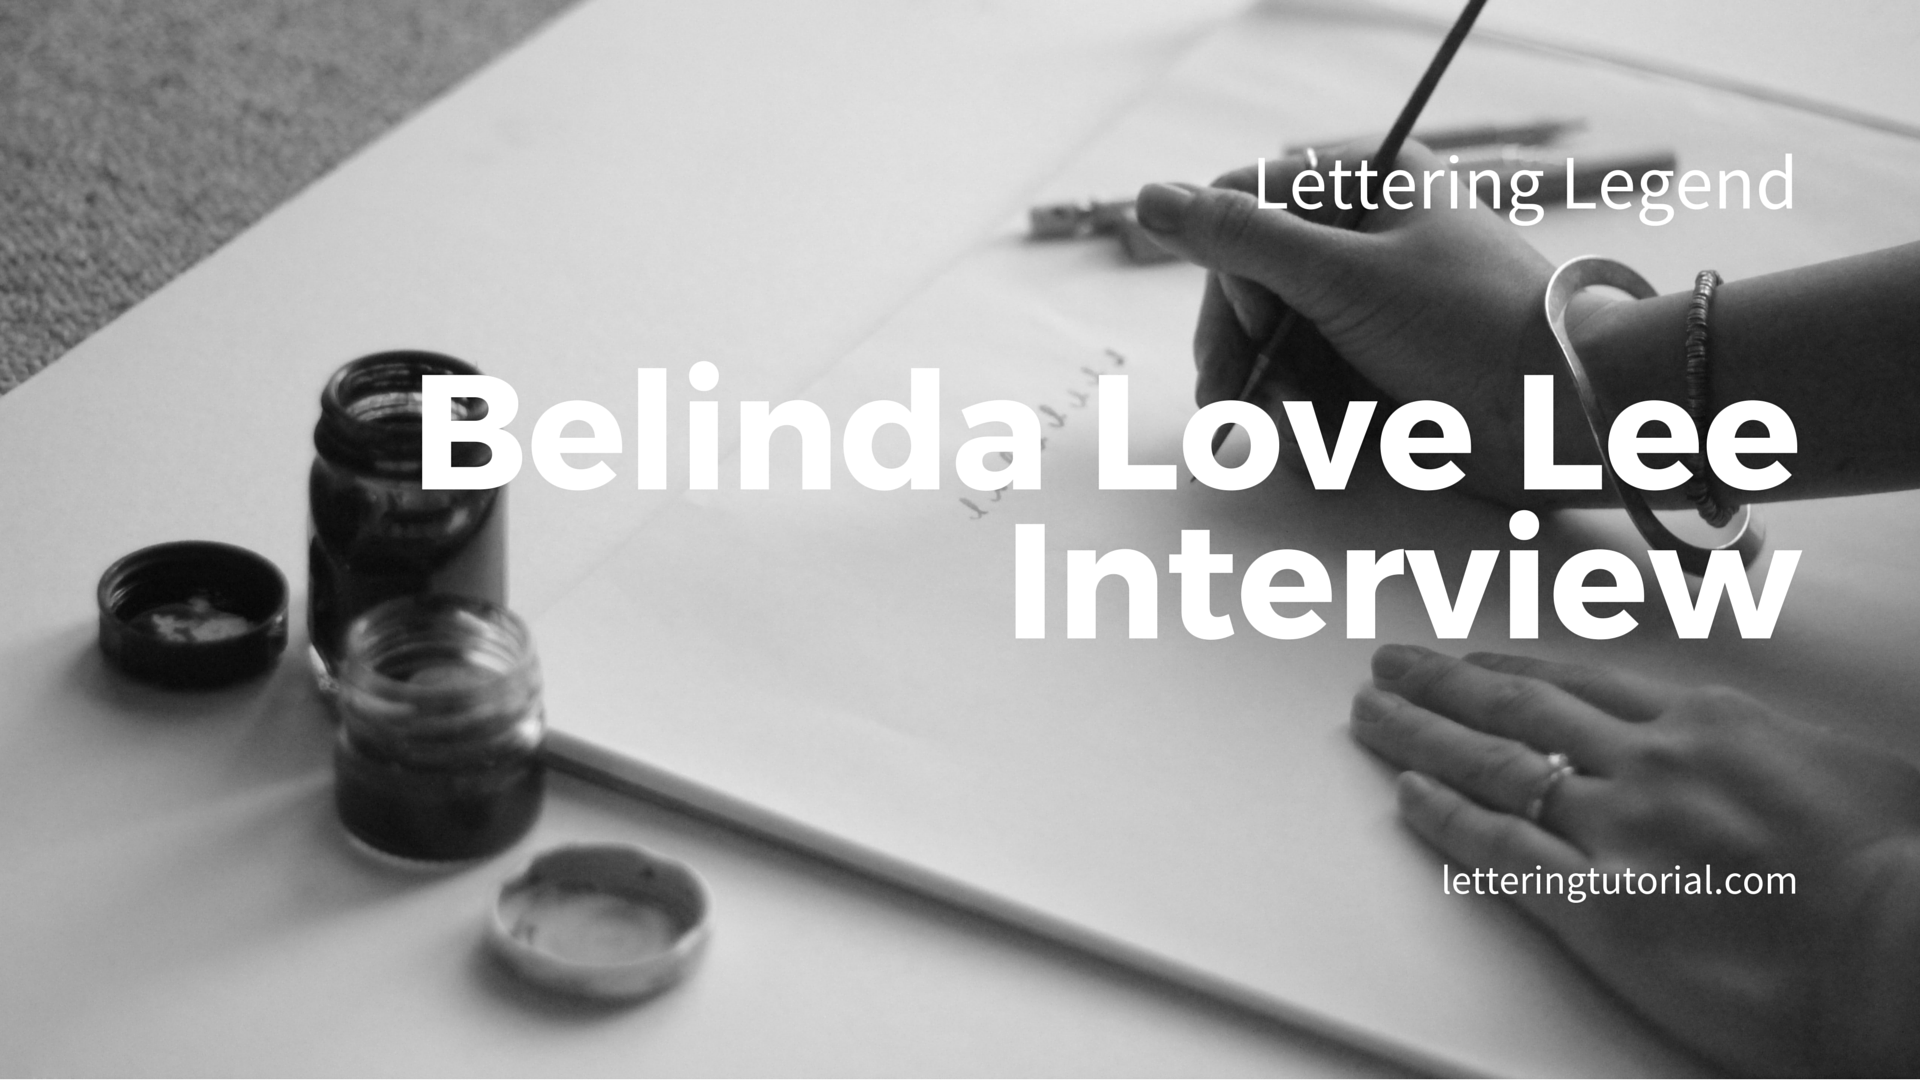 Belinda Love Lee Interview - Lettering Tutorial